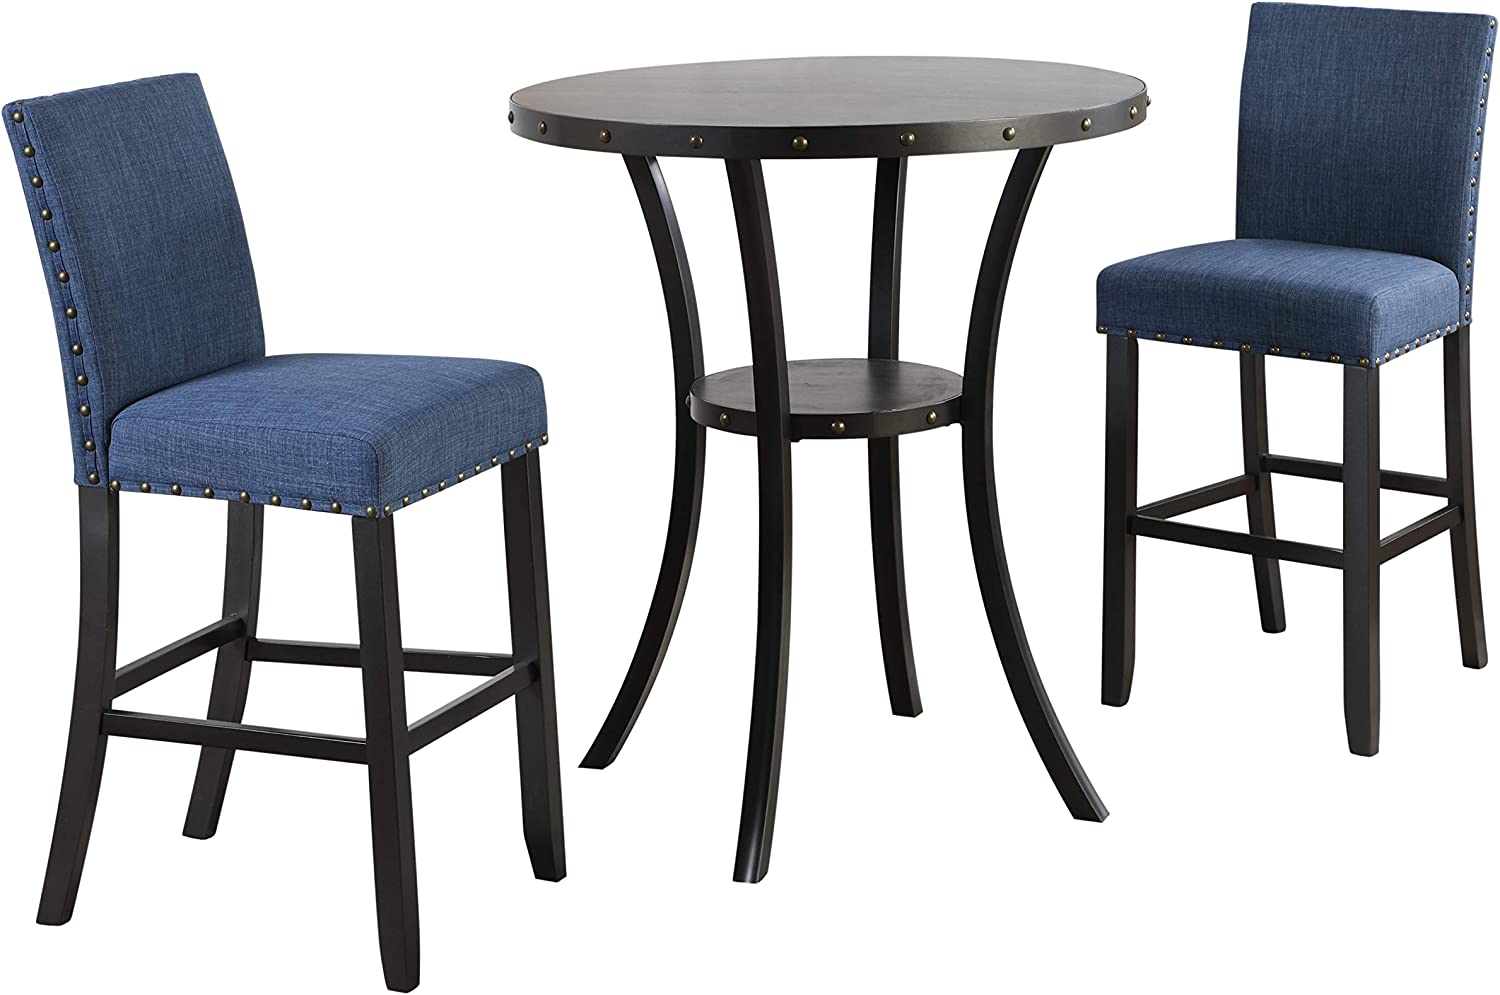 New Classic Furniture Crispin Bar Marine Two Chairs Now free shipping favorite Table with